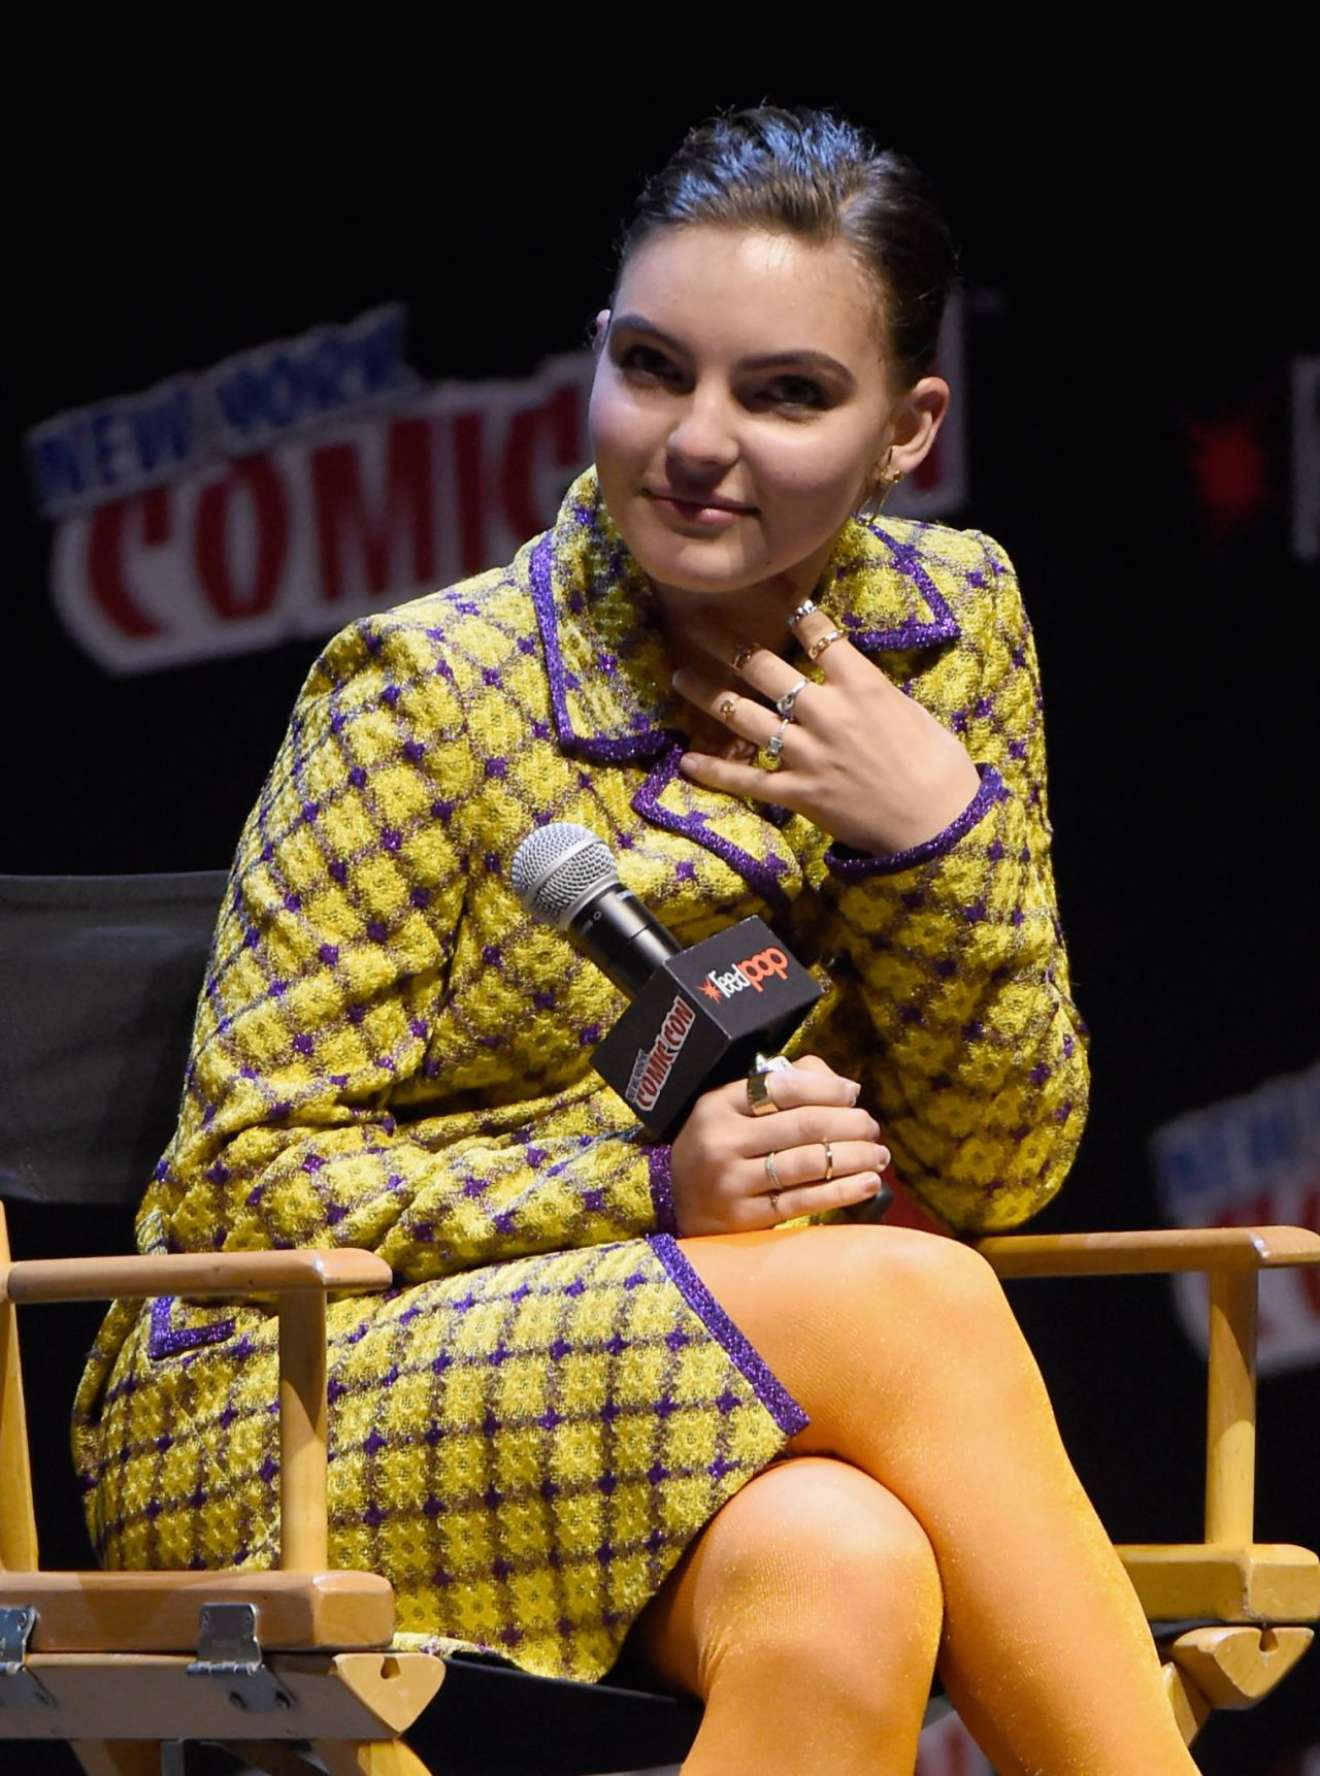 Camren Bicondova - 2017 New York Comic Con Panel